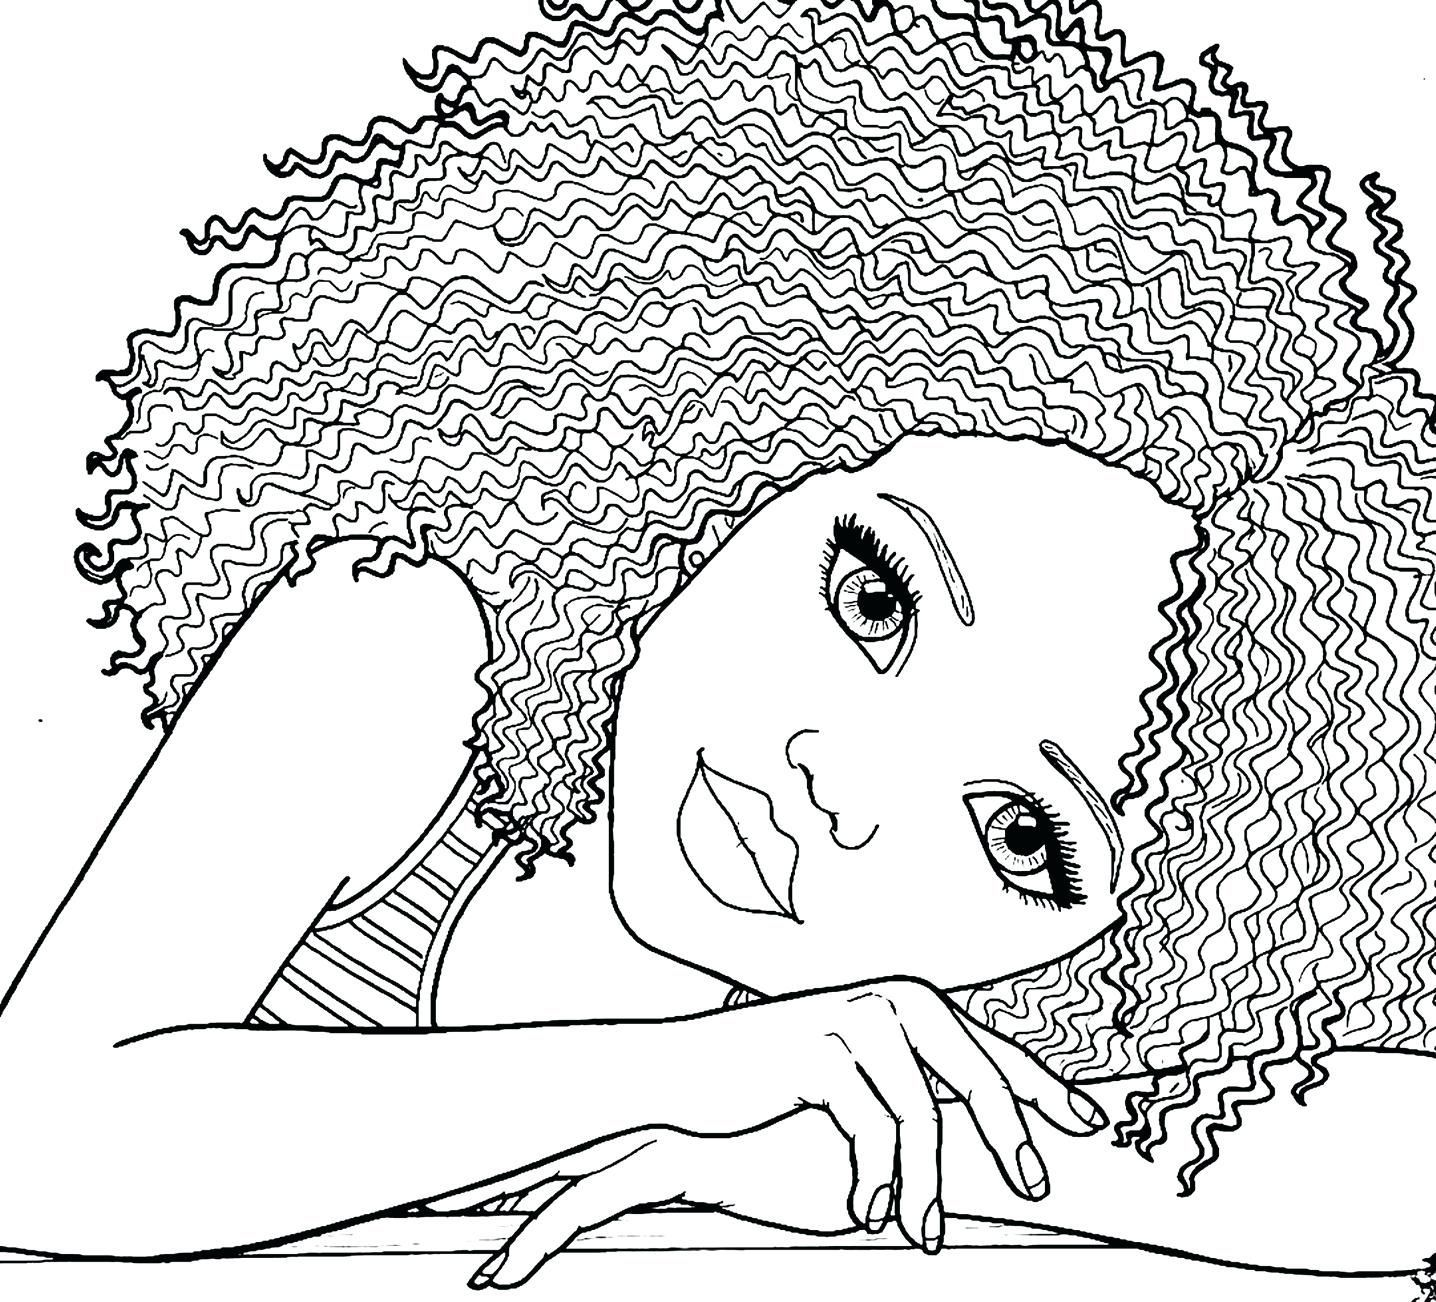 Pin By Kalexas On Printed Pictures Barbie Coloring Pages Barbie Coloring Pages Coloring Pages For Girls Barbie Coloring